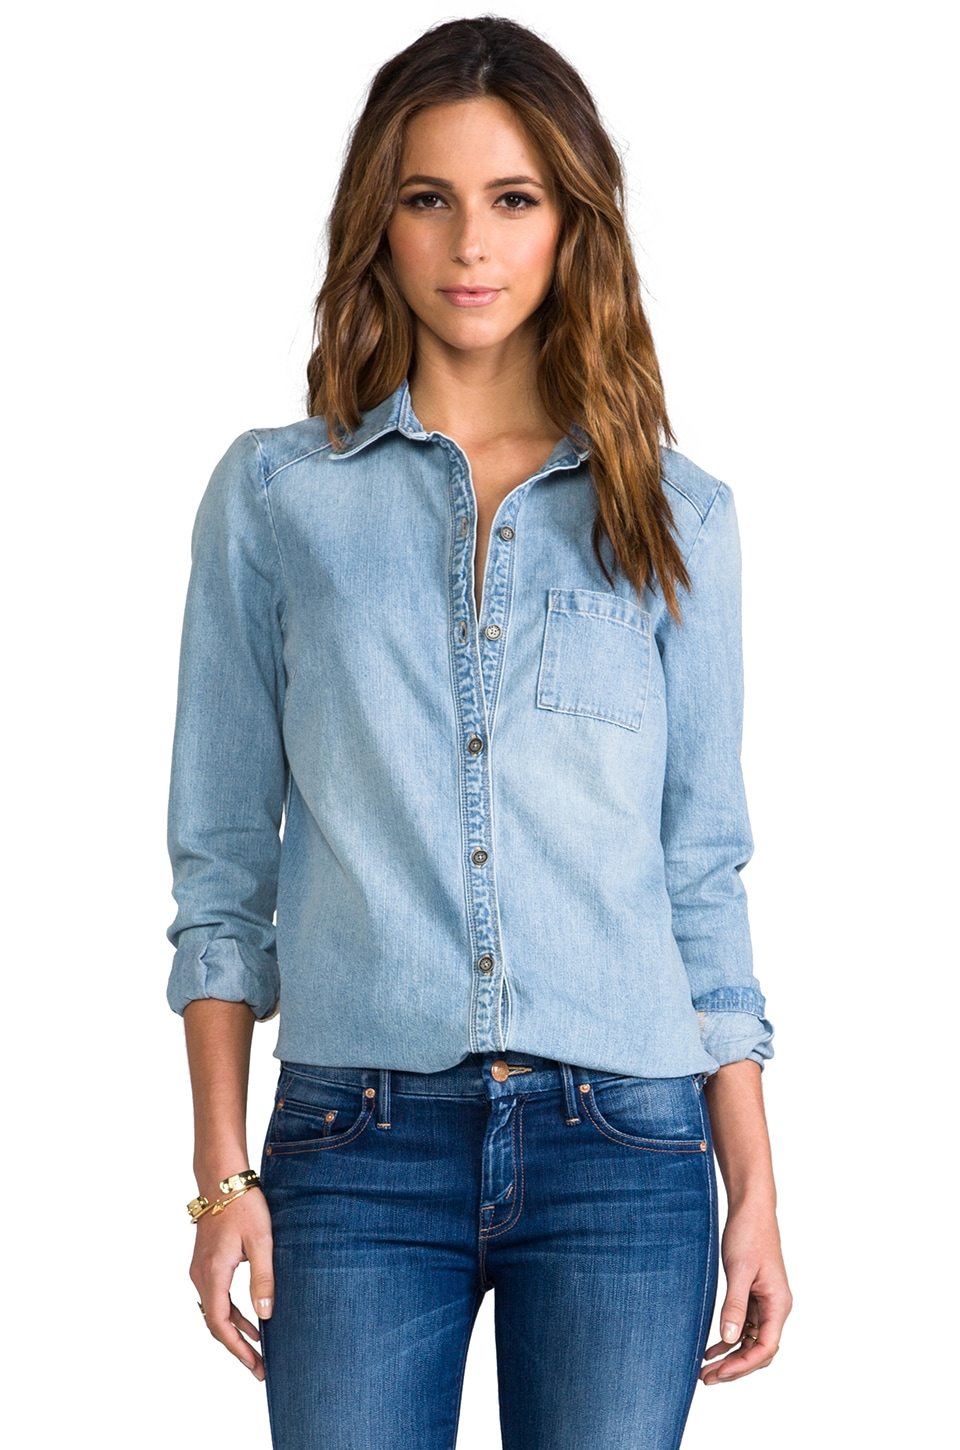 Paige Denim Eden Shirt in Jaqueline